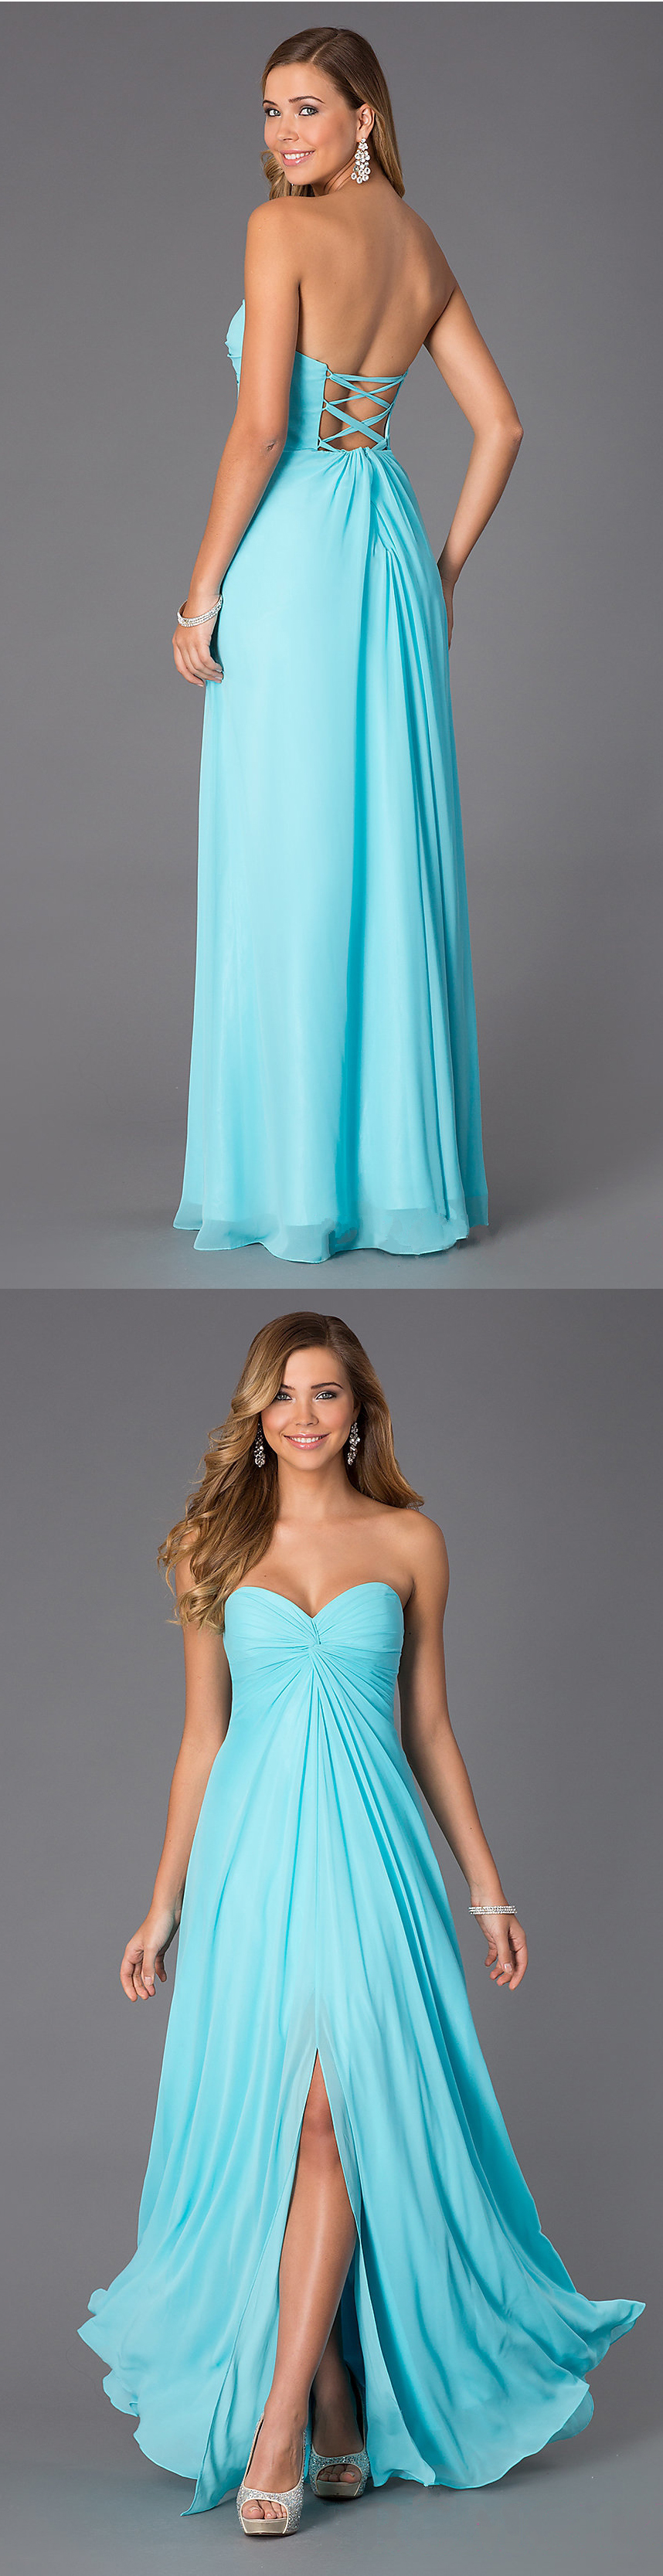 Strapless Sweetheart Long Lace Tiffany Blue Prom Dress by Faviana ...